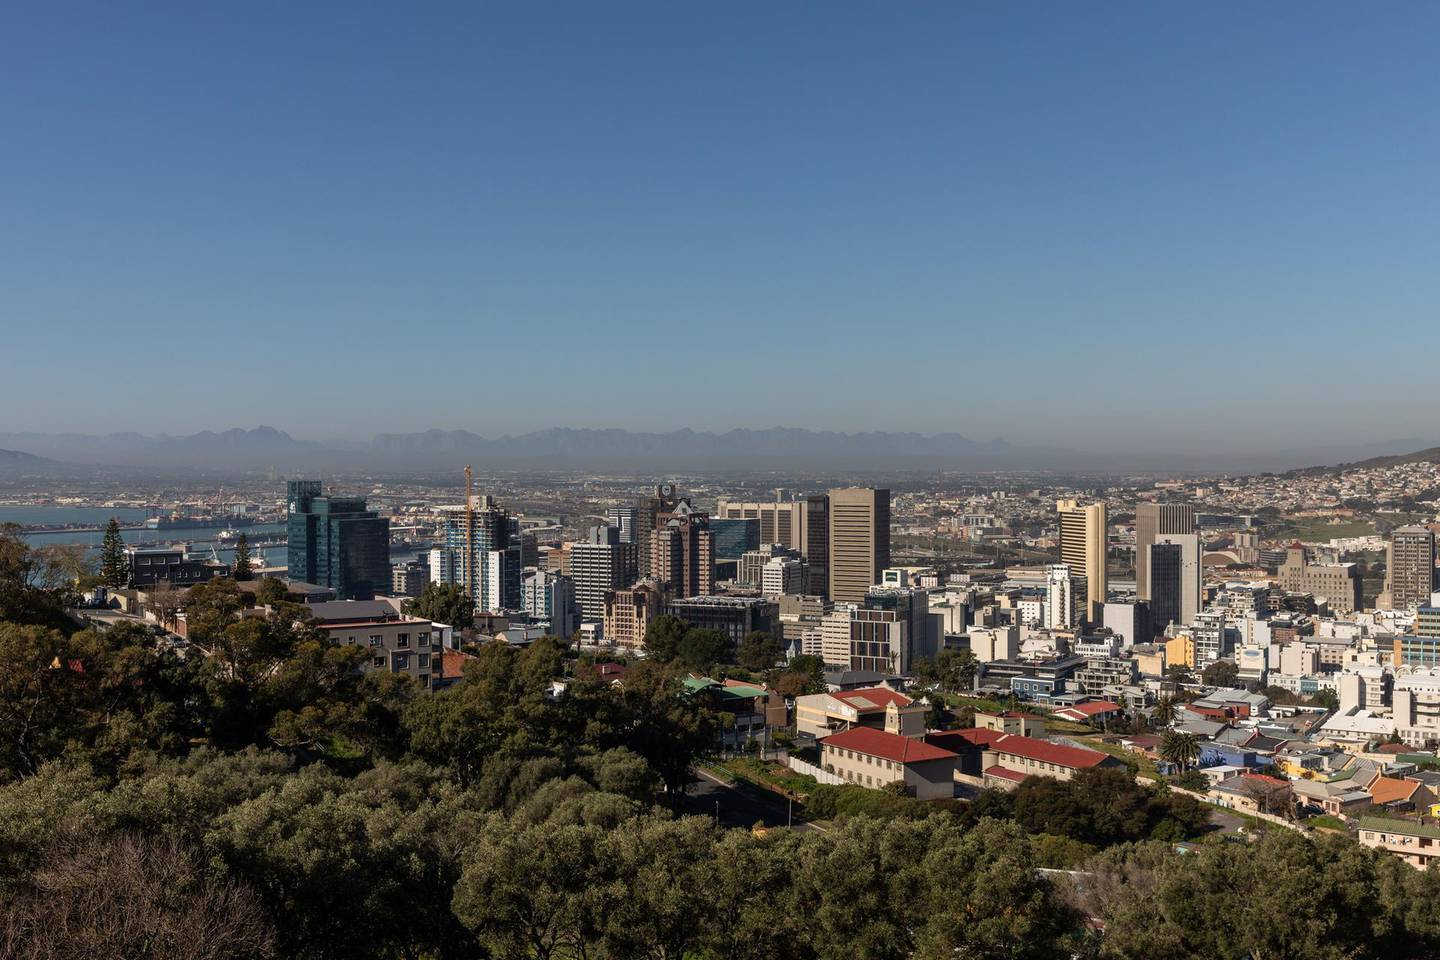 The port area stands beyond commercial high-rise properties in Cape Town, South Africa, on Thursday, July 23, 2020. South Africa's surging coronavirus infections and the resumption of rolling blackouts are clouding the outlook for the economy. Photographer: Dwayne Senior/Bloomberg